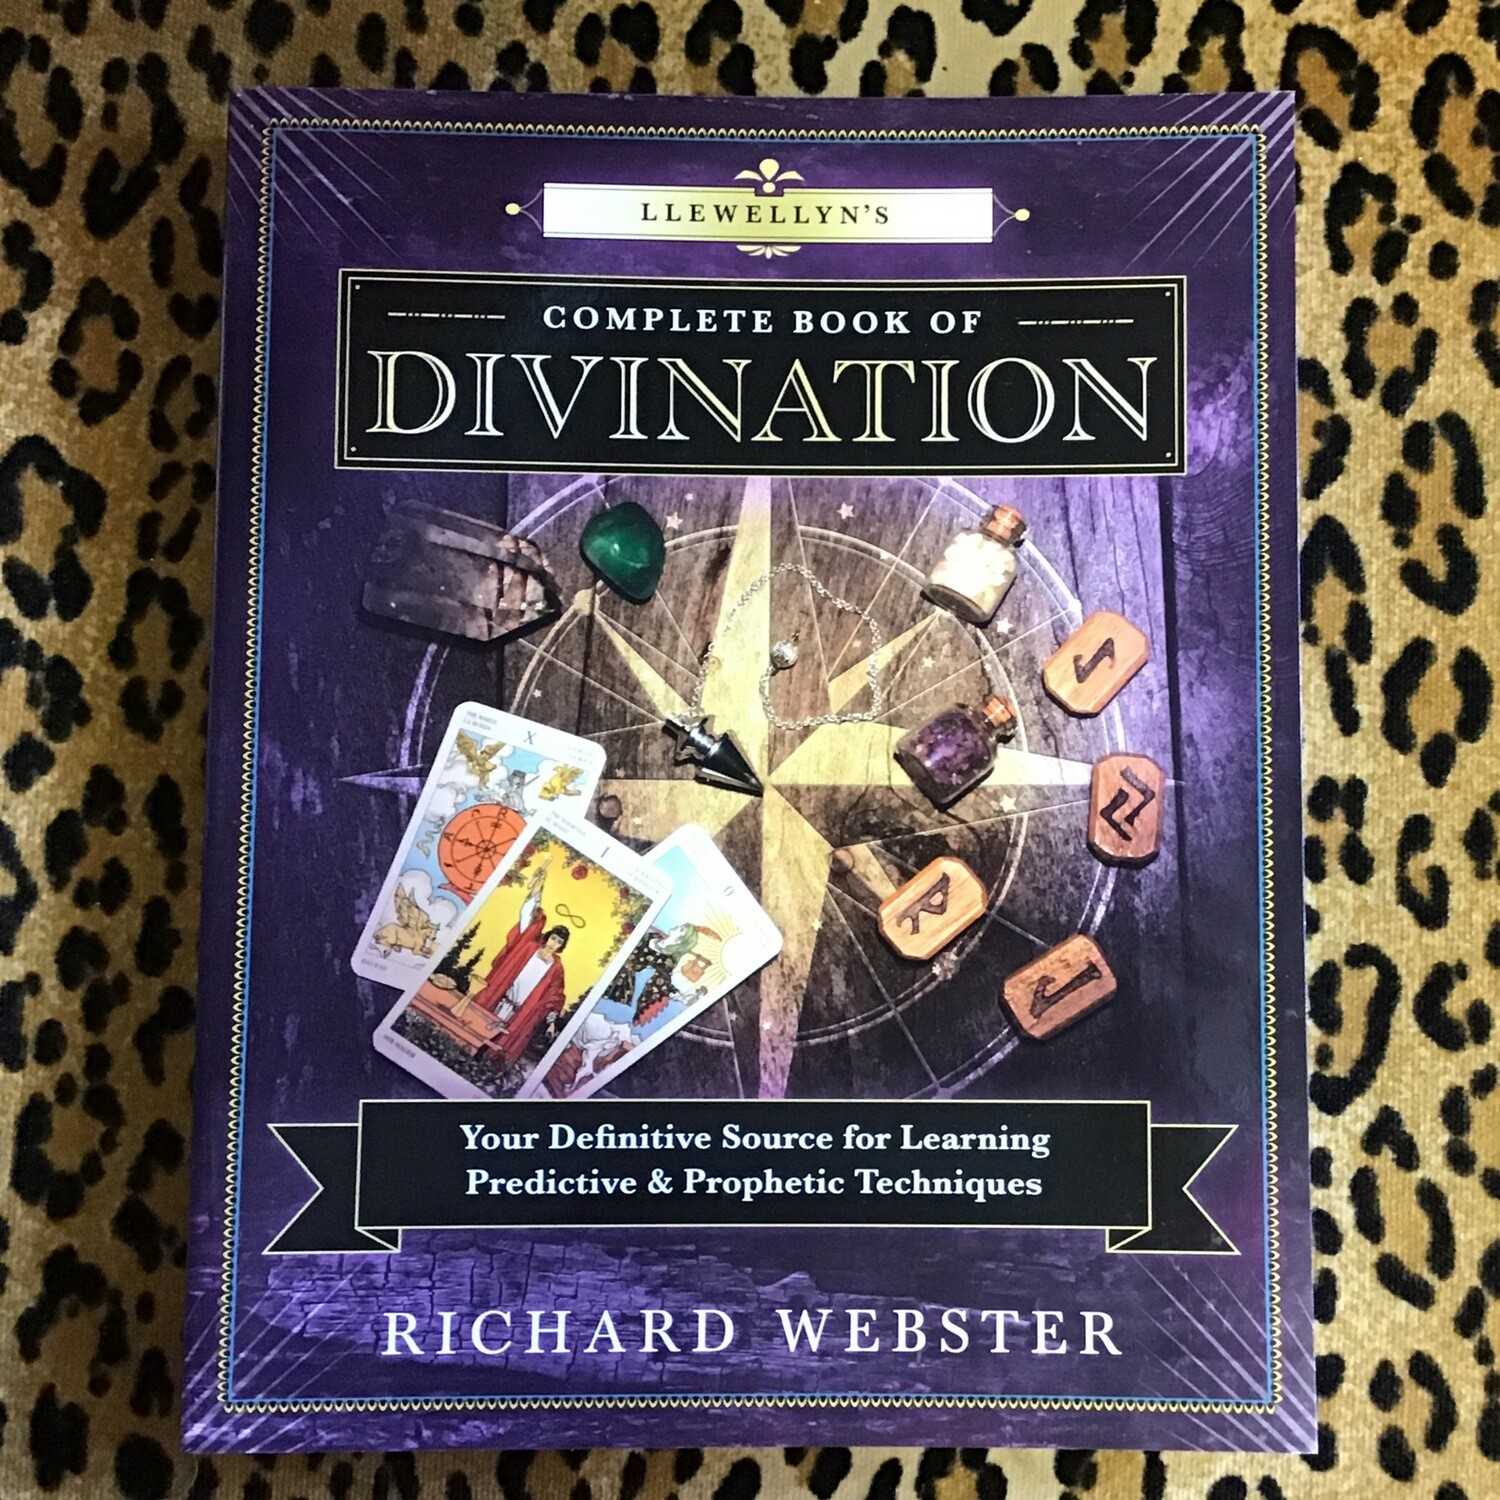 The Complete Book of Divination by Richard Webster